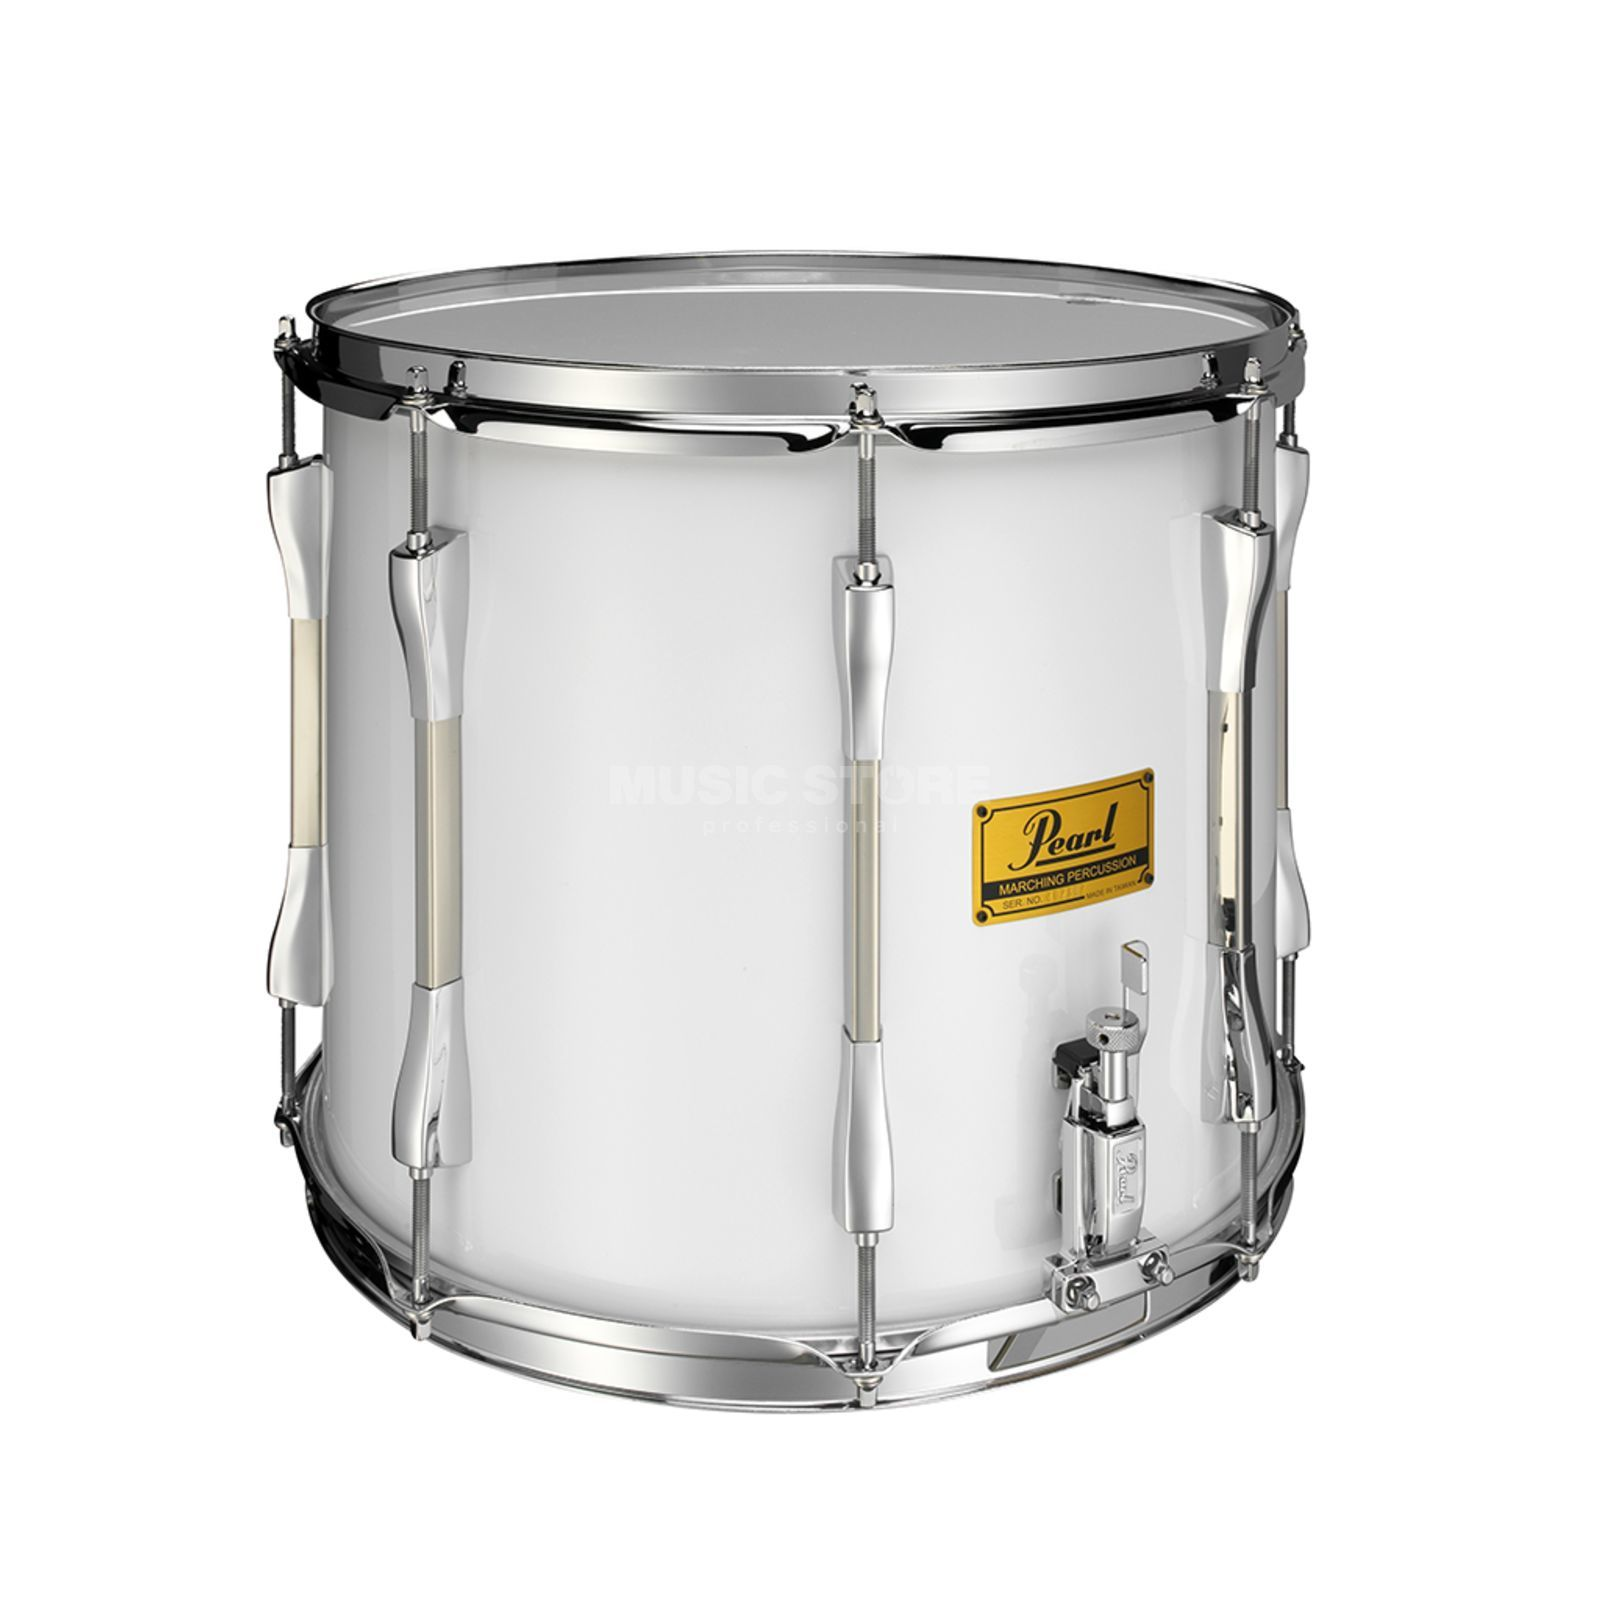 "Pearl Parade Snare Drum 14""x12"", Single Snare, #33 Produktbild"